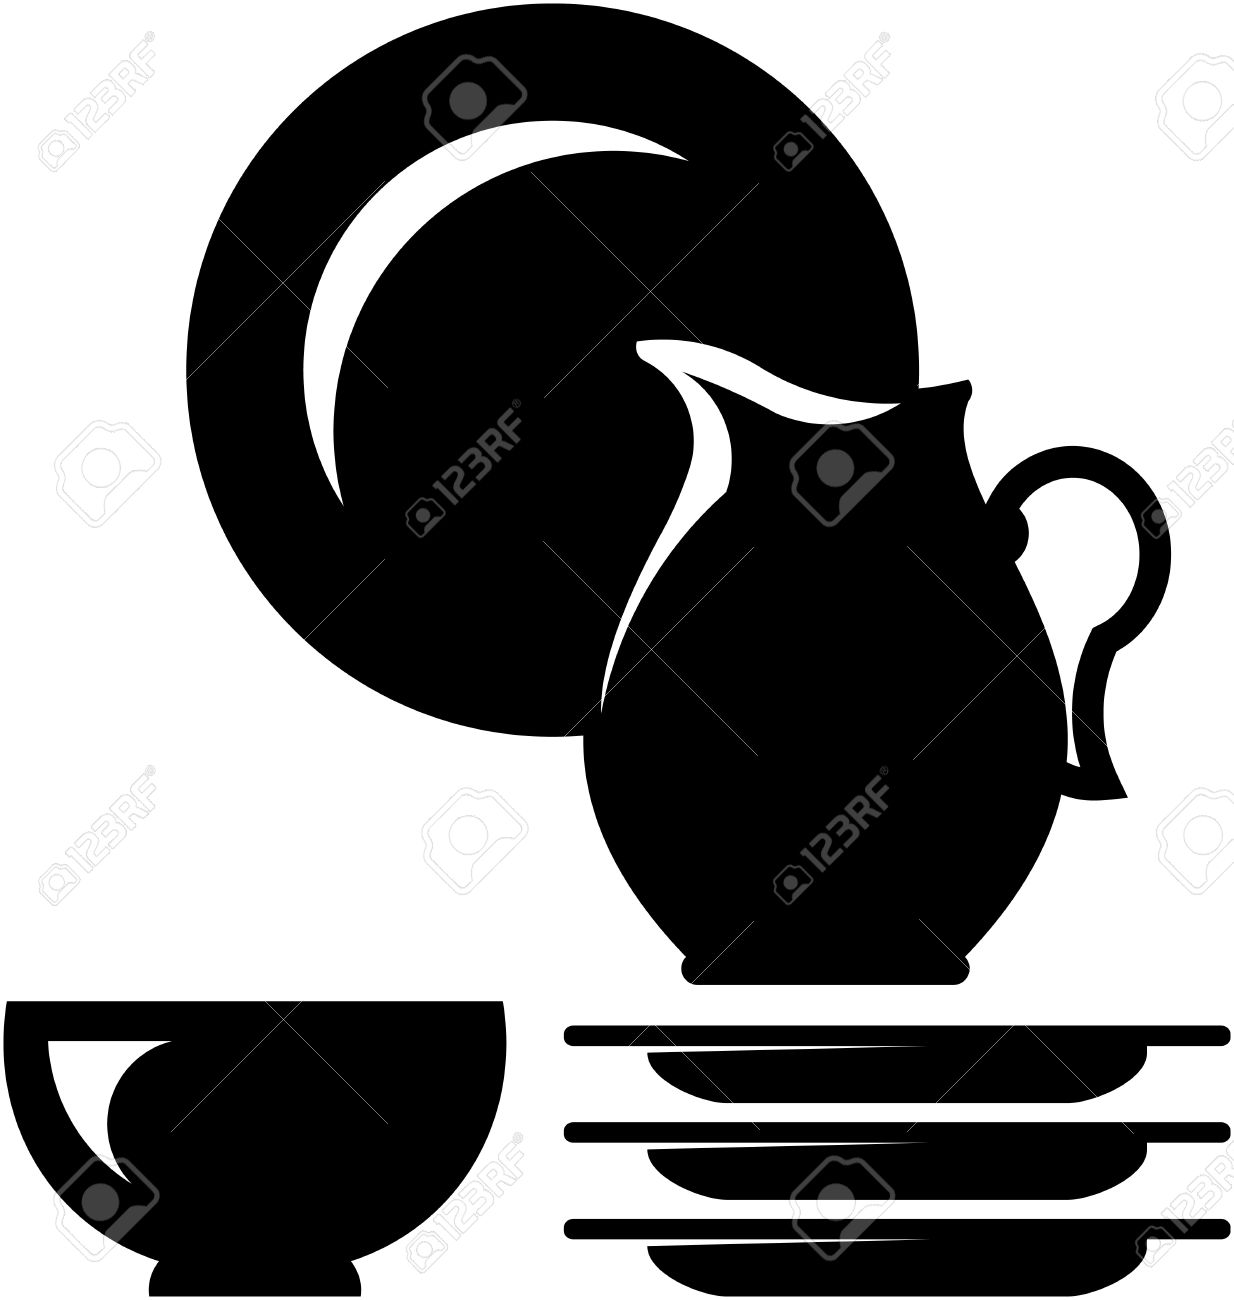 Vector Crockery Illustration.